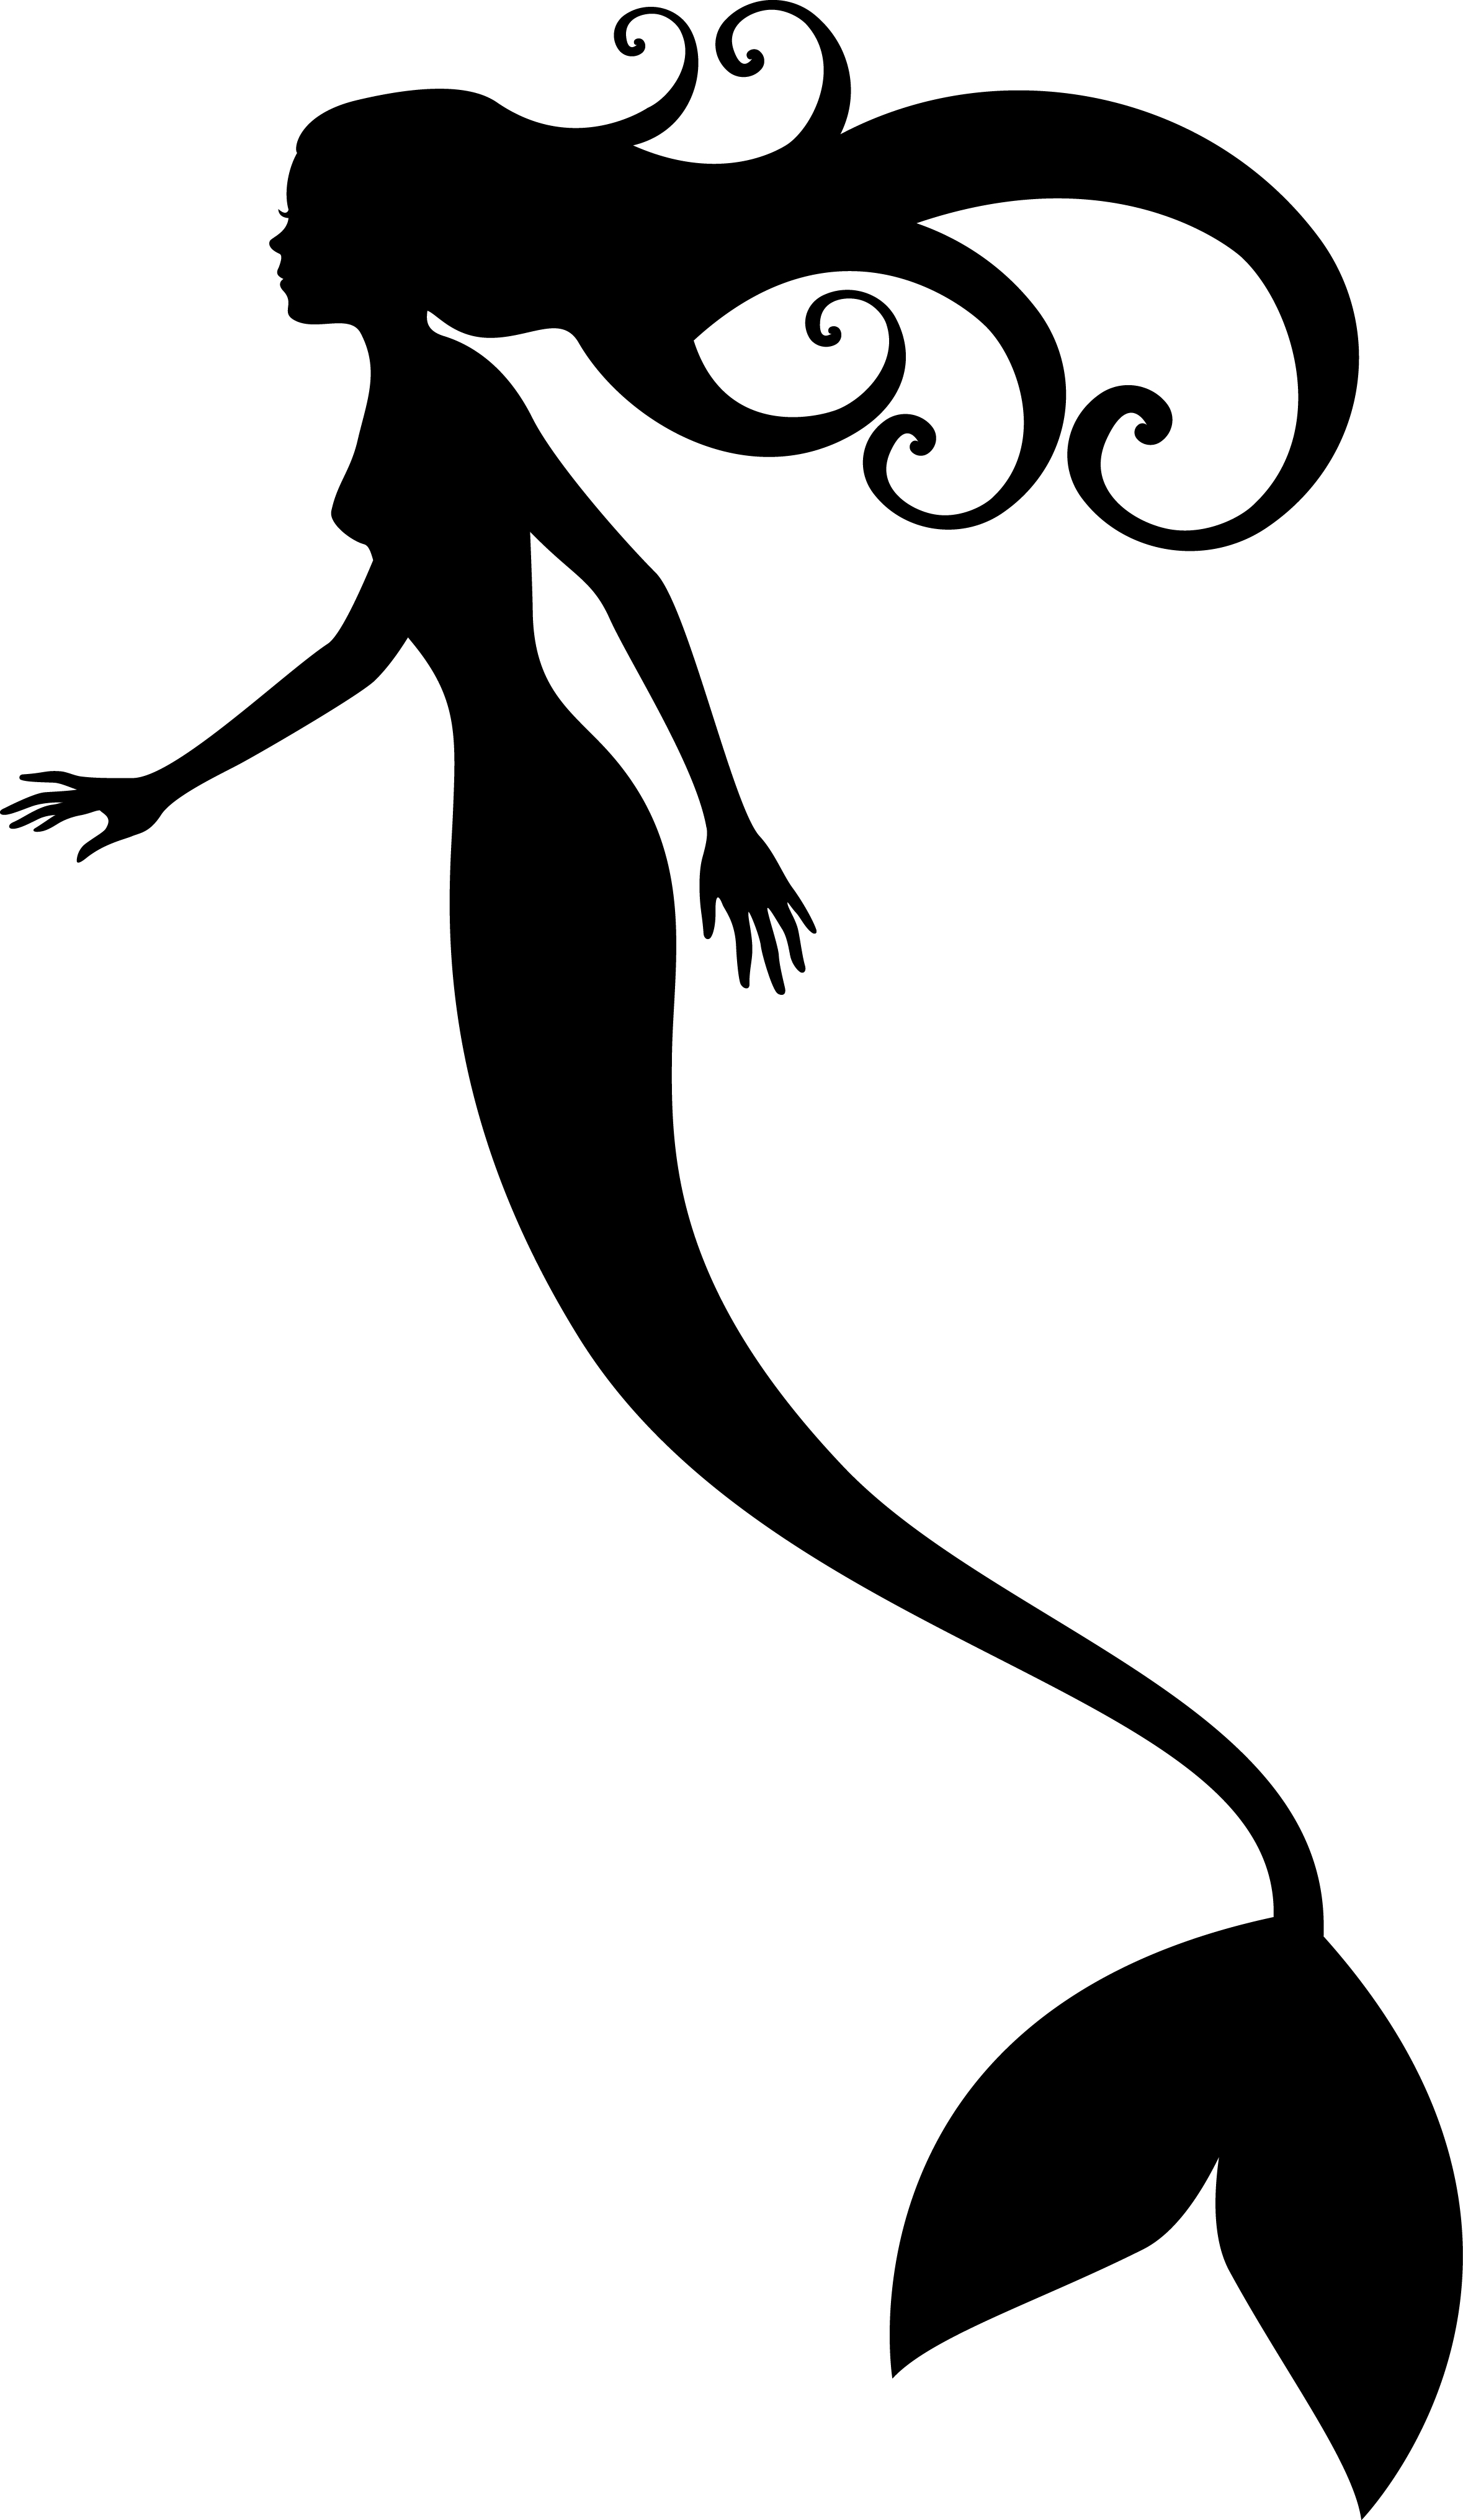 Free Black And White Mermaid Clipart, Download Free Clip Art.